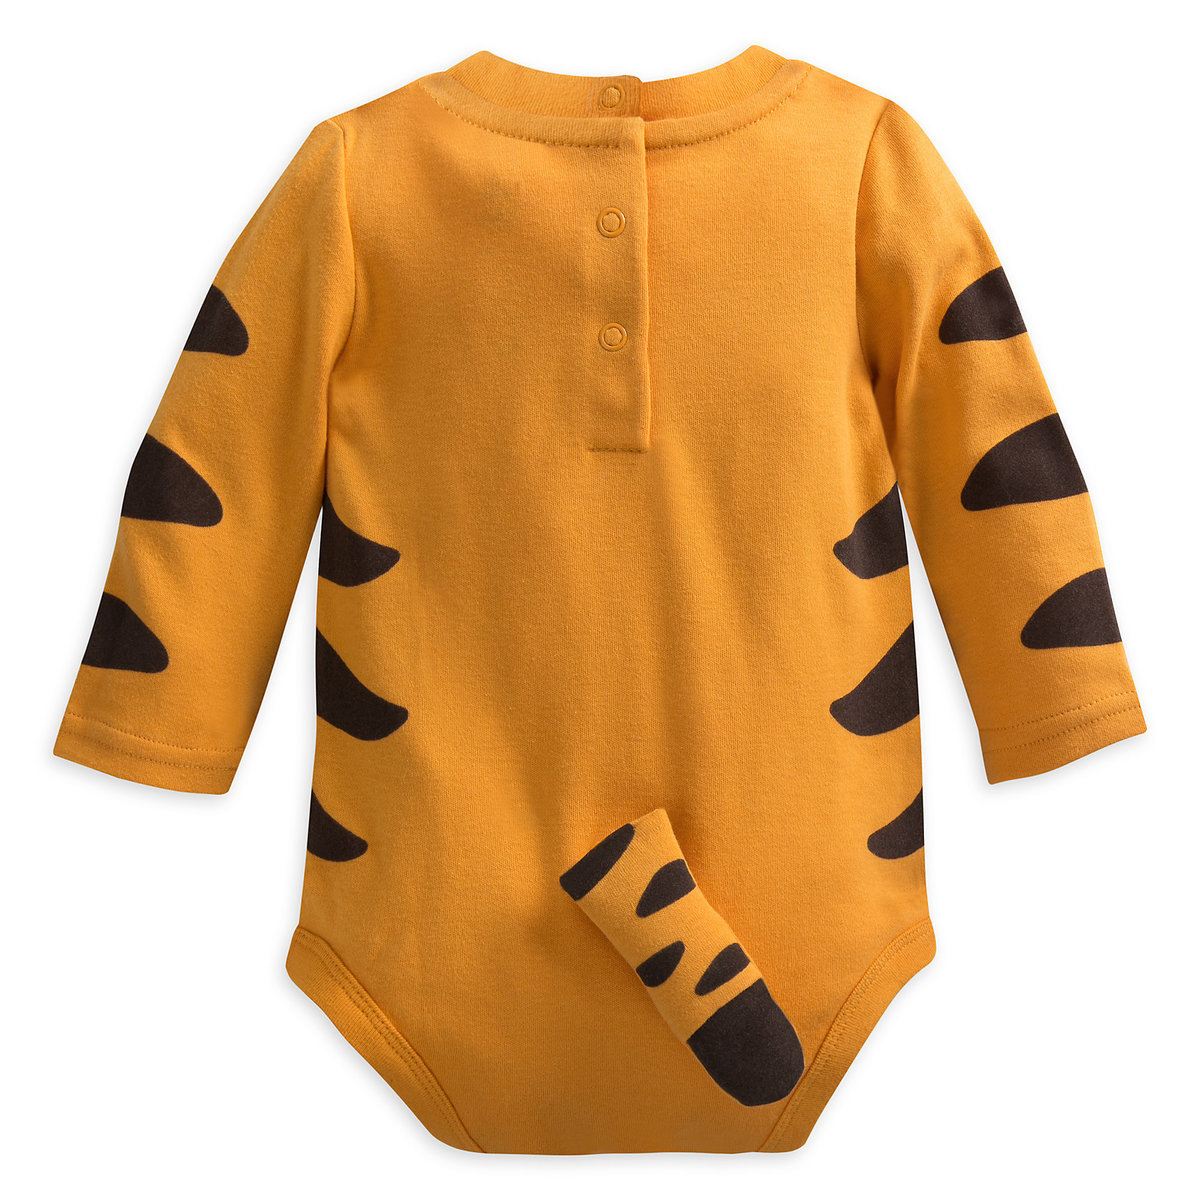 f03c42e57 Product Image of Tigger Disney Cuddly Bodysuit Costume for Baby -  Personalizable # 4